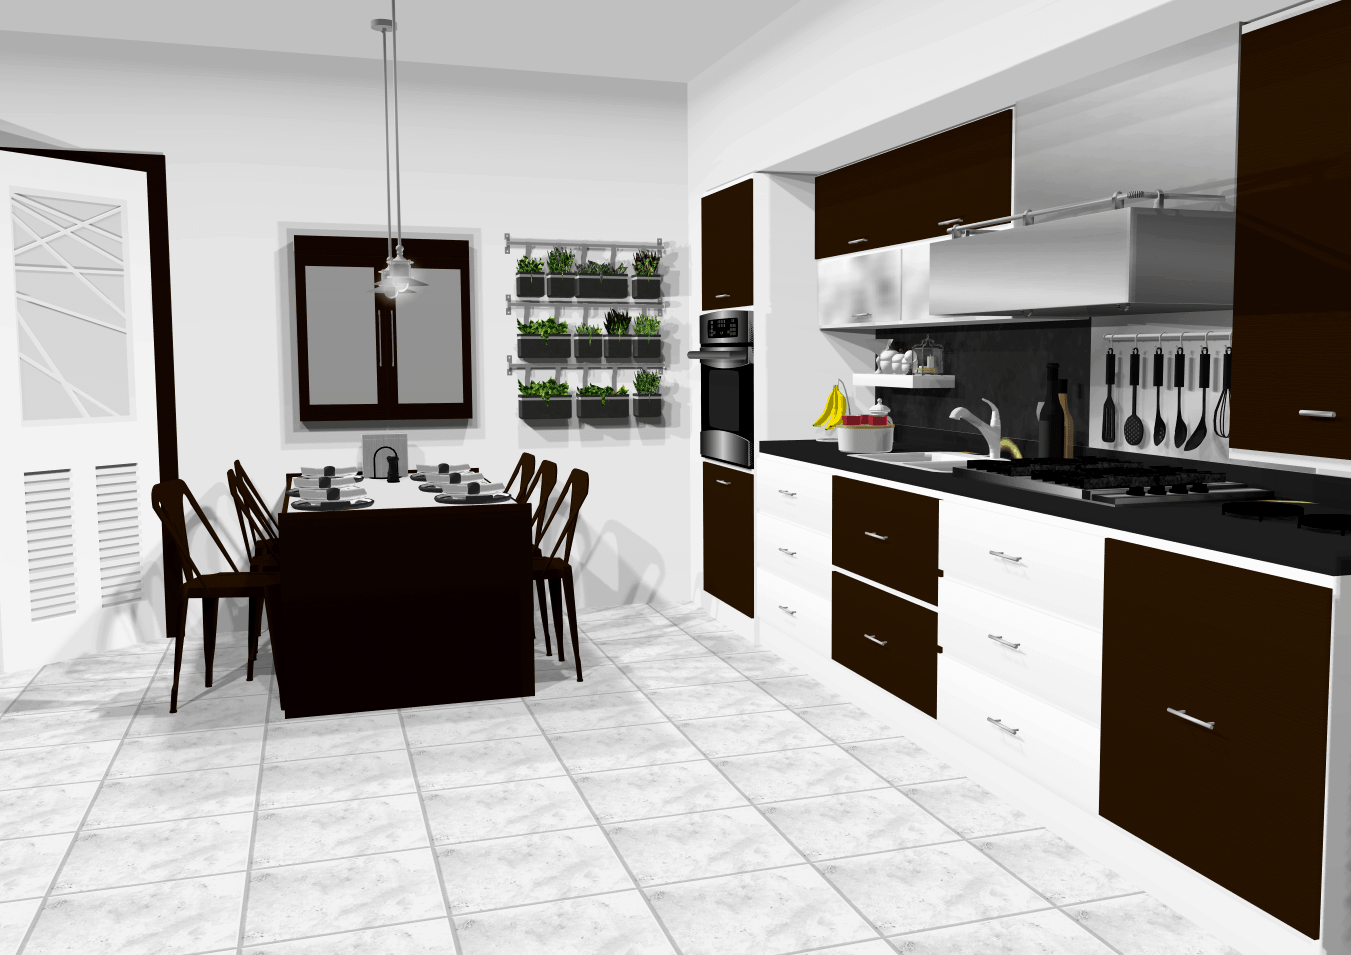 16 best online kitchen design software options in 2018 free paid Kitchen design rendering software